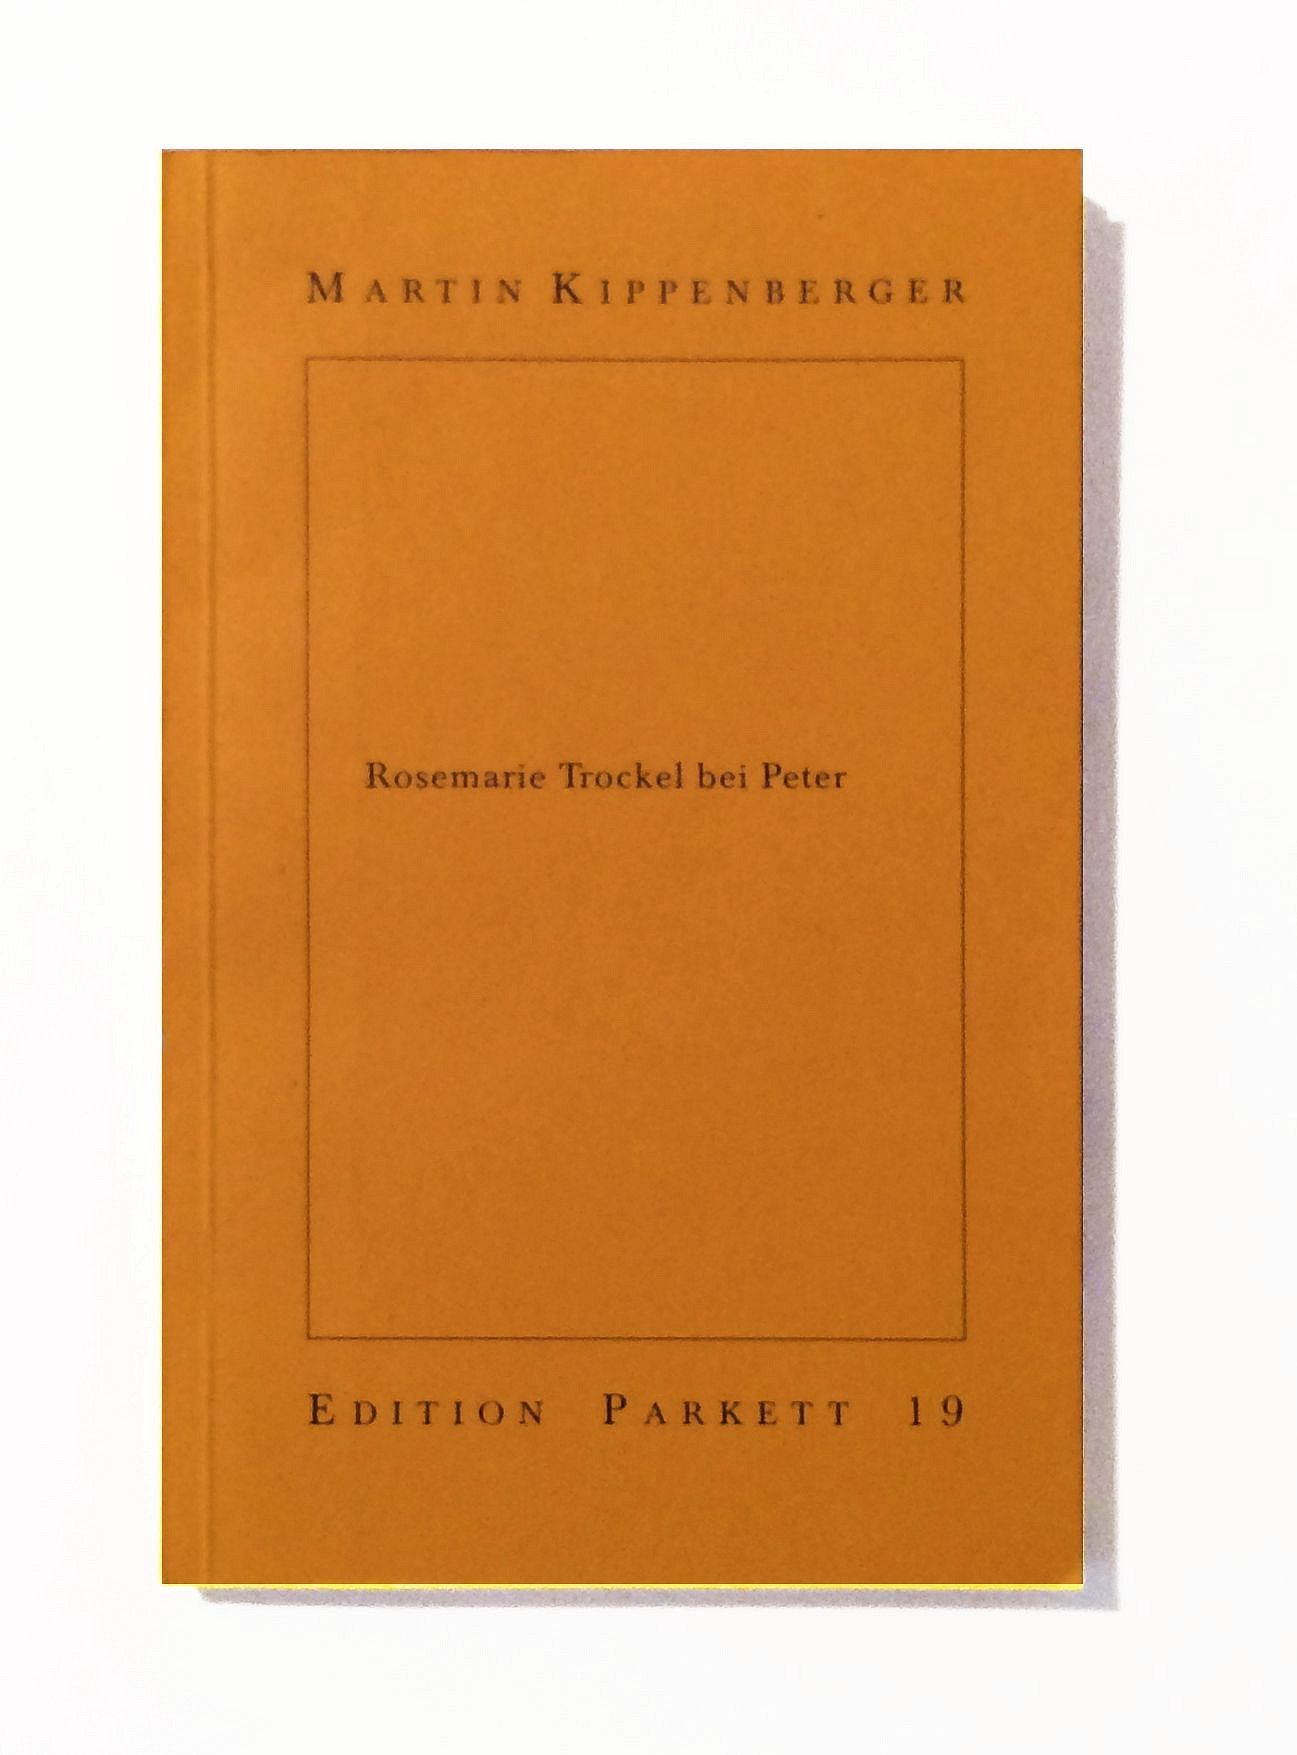 Martin Kippenberger, Rosemarie Trockel bei Peter(UNIQUE BOOK) 1989